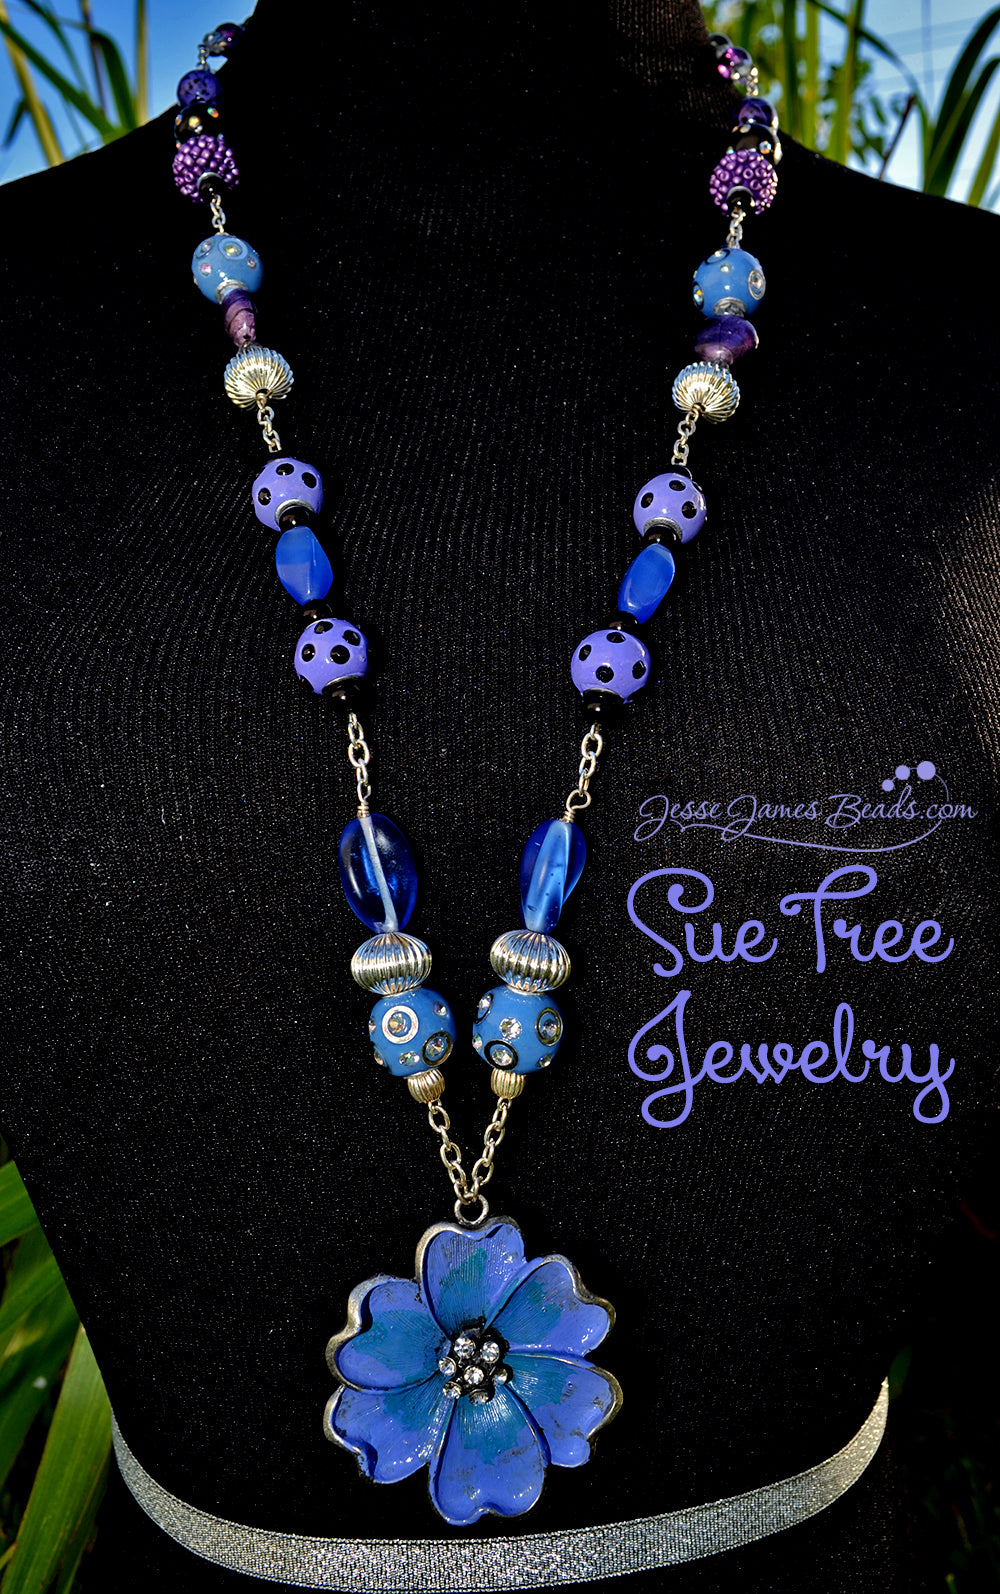 design contest - suetree jewelry